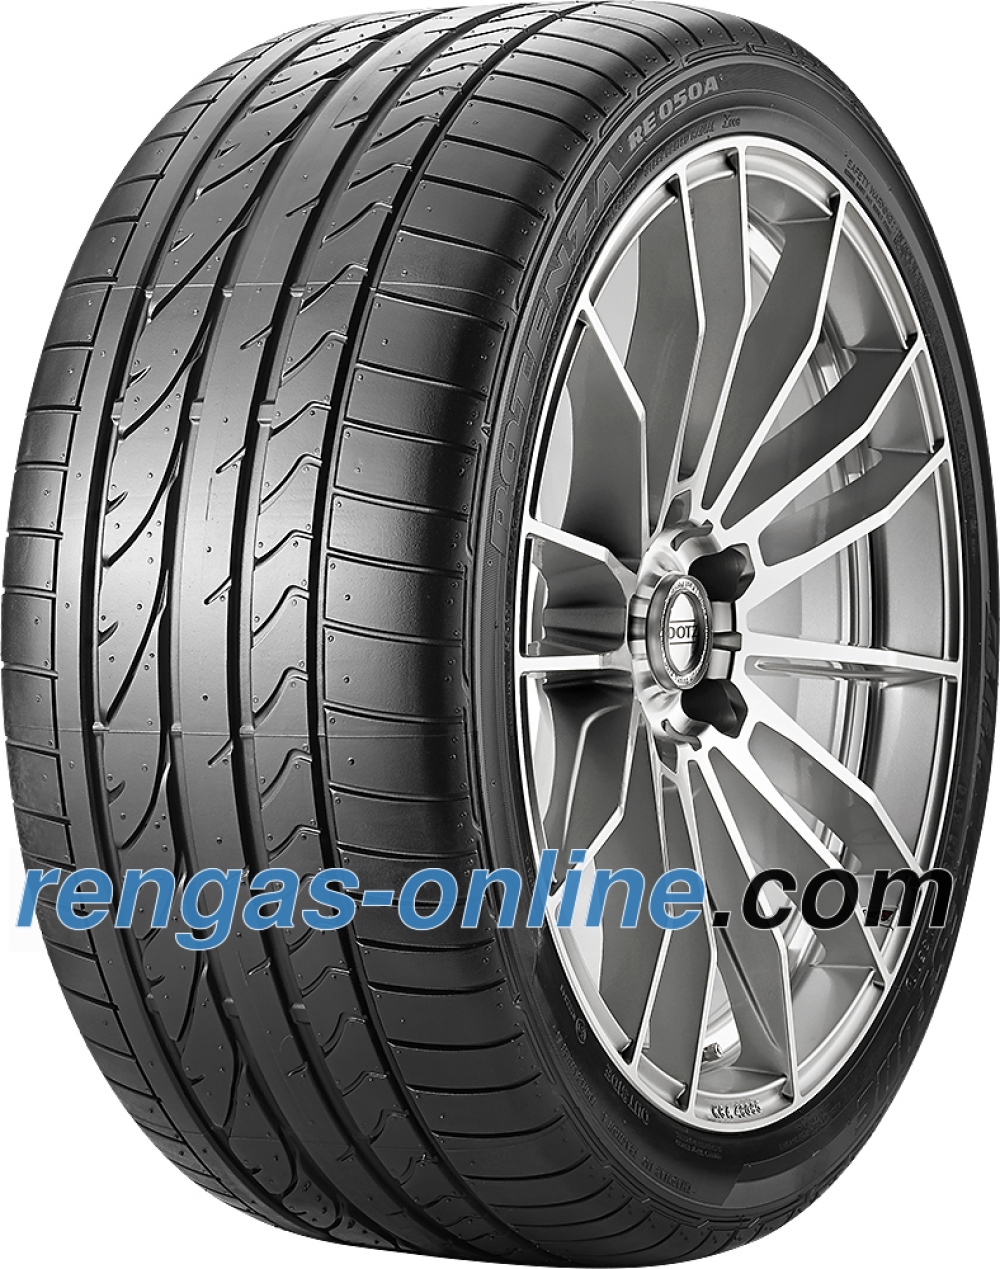 bridgestone-potenza-re-050-a-pole-position-26540-zr18-101y-xl-n1-vannesuojalla-mfs